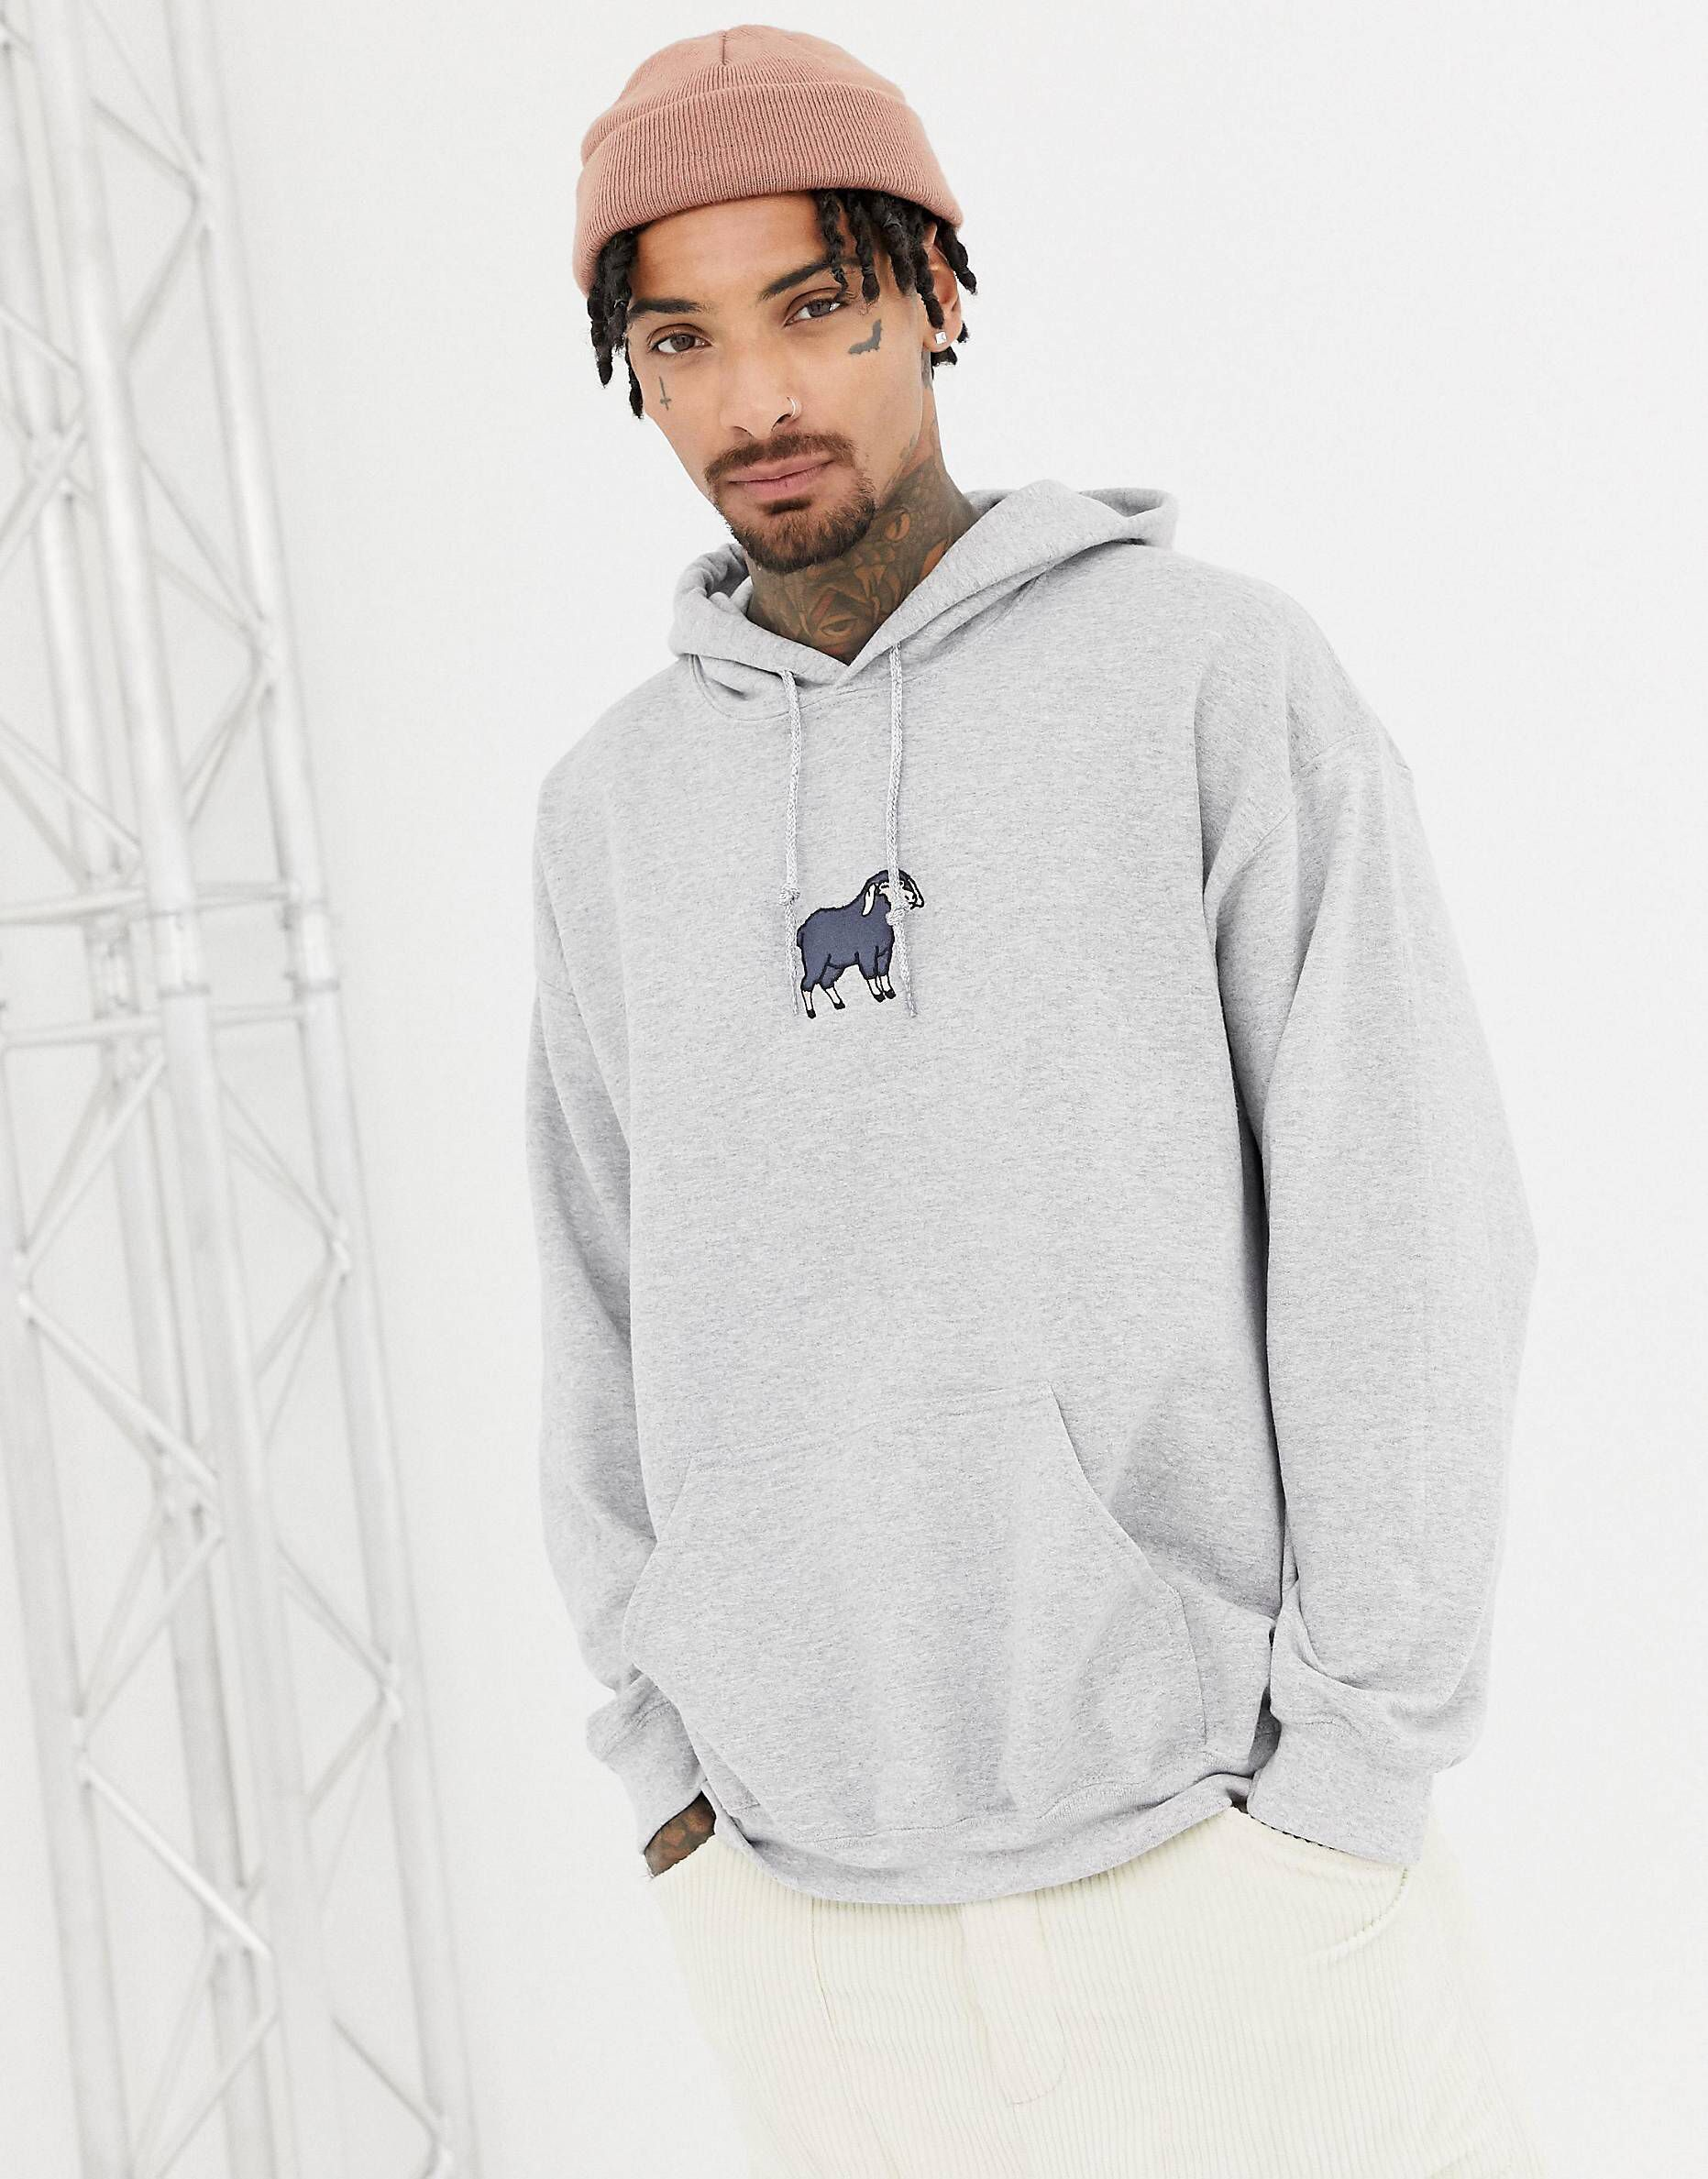 ec0cdf6f6146 Just when I thought I didn't need something new from ASOS, I kinda do